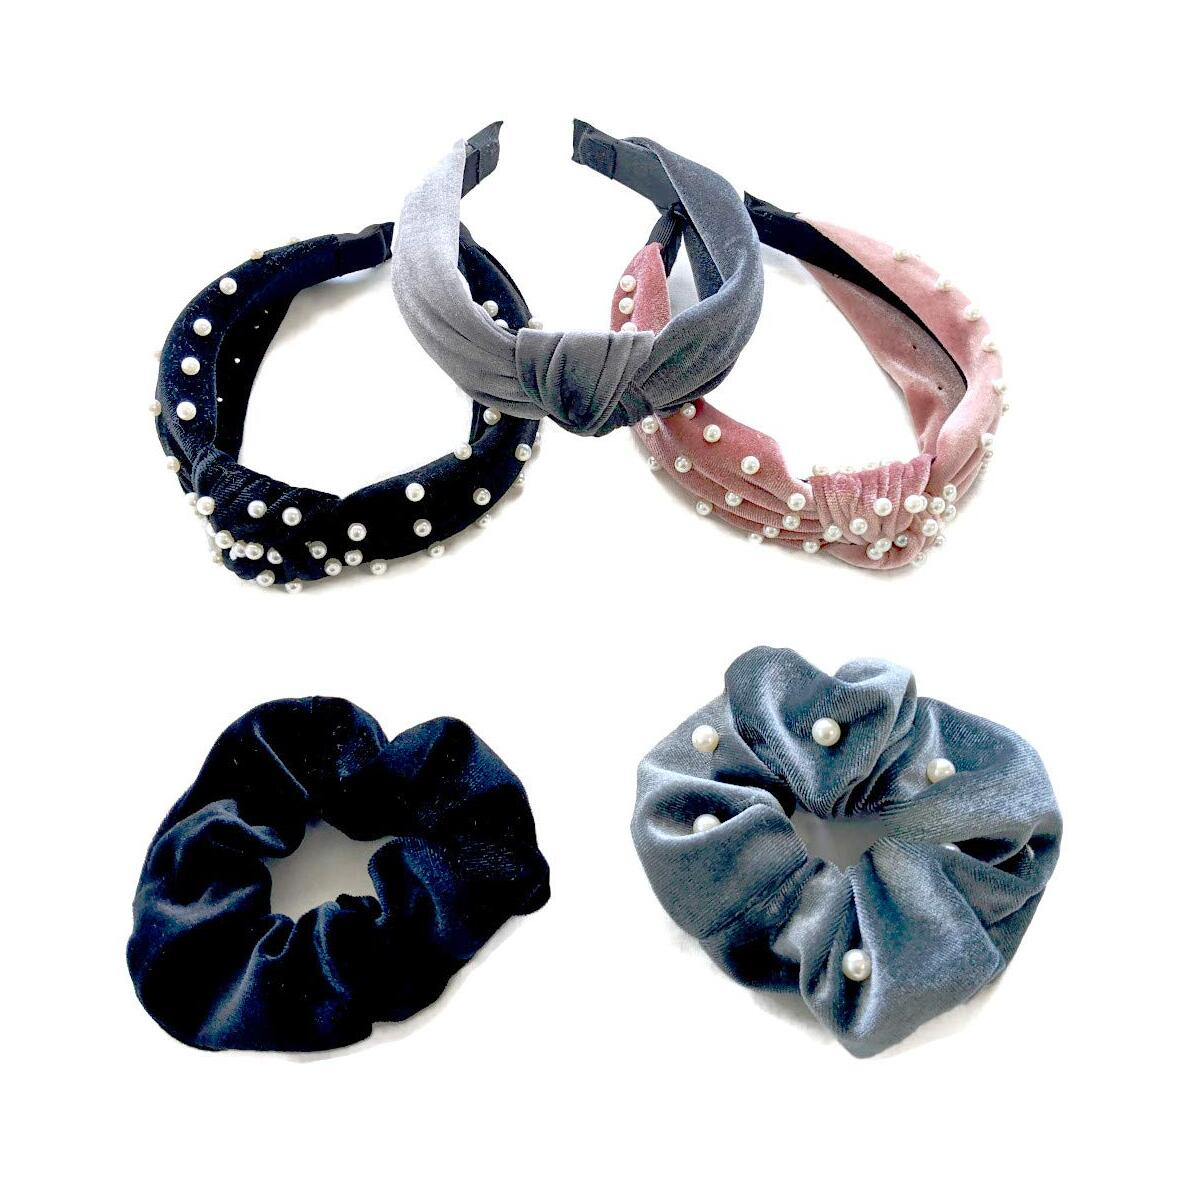 Qumii Velvet Fashion Headbands with 2 Bonus Scrunchies - Knotted Headbands for Women and Girls